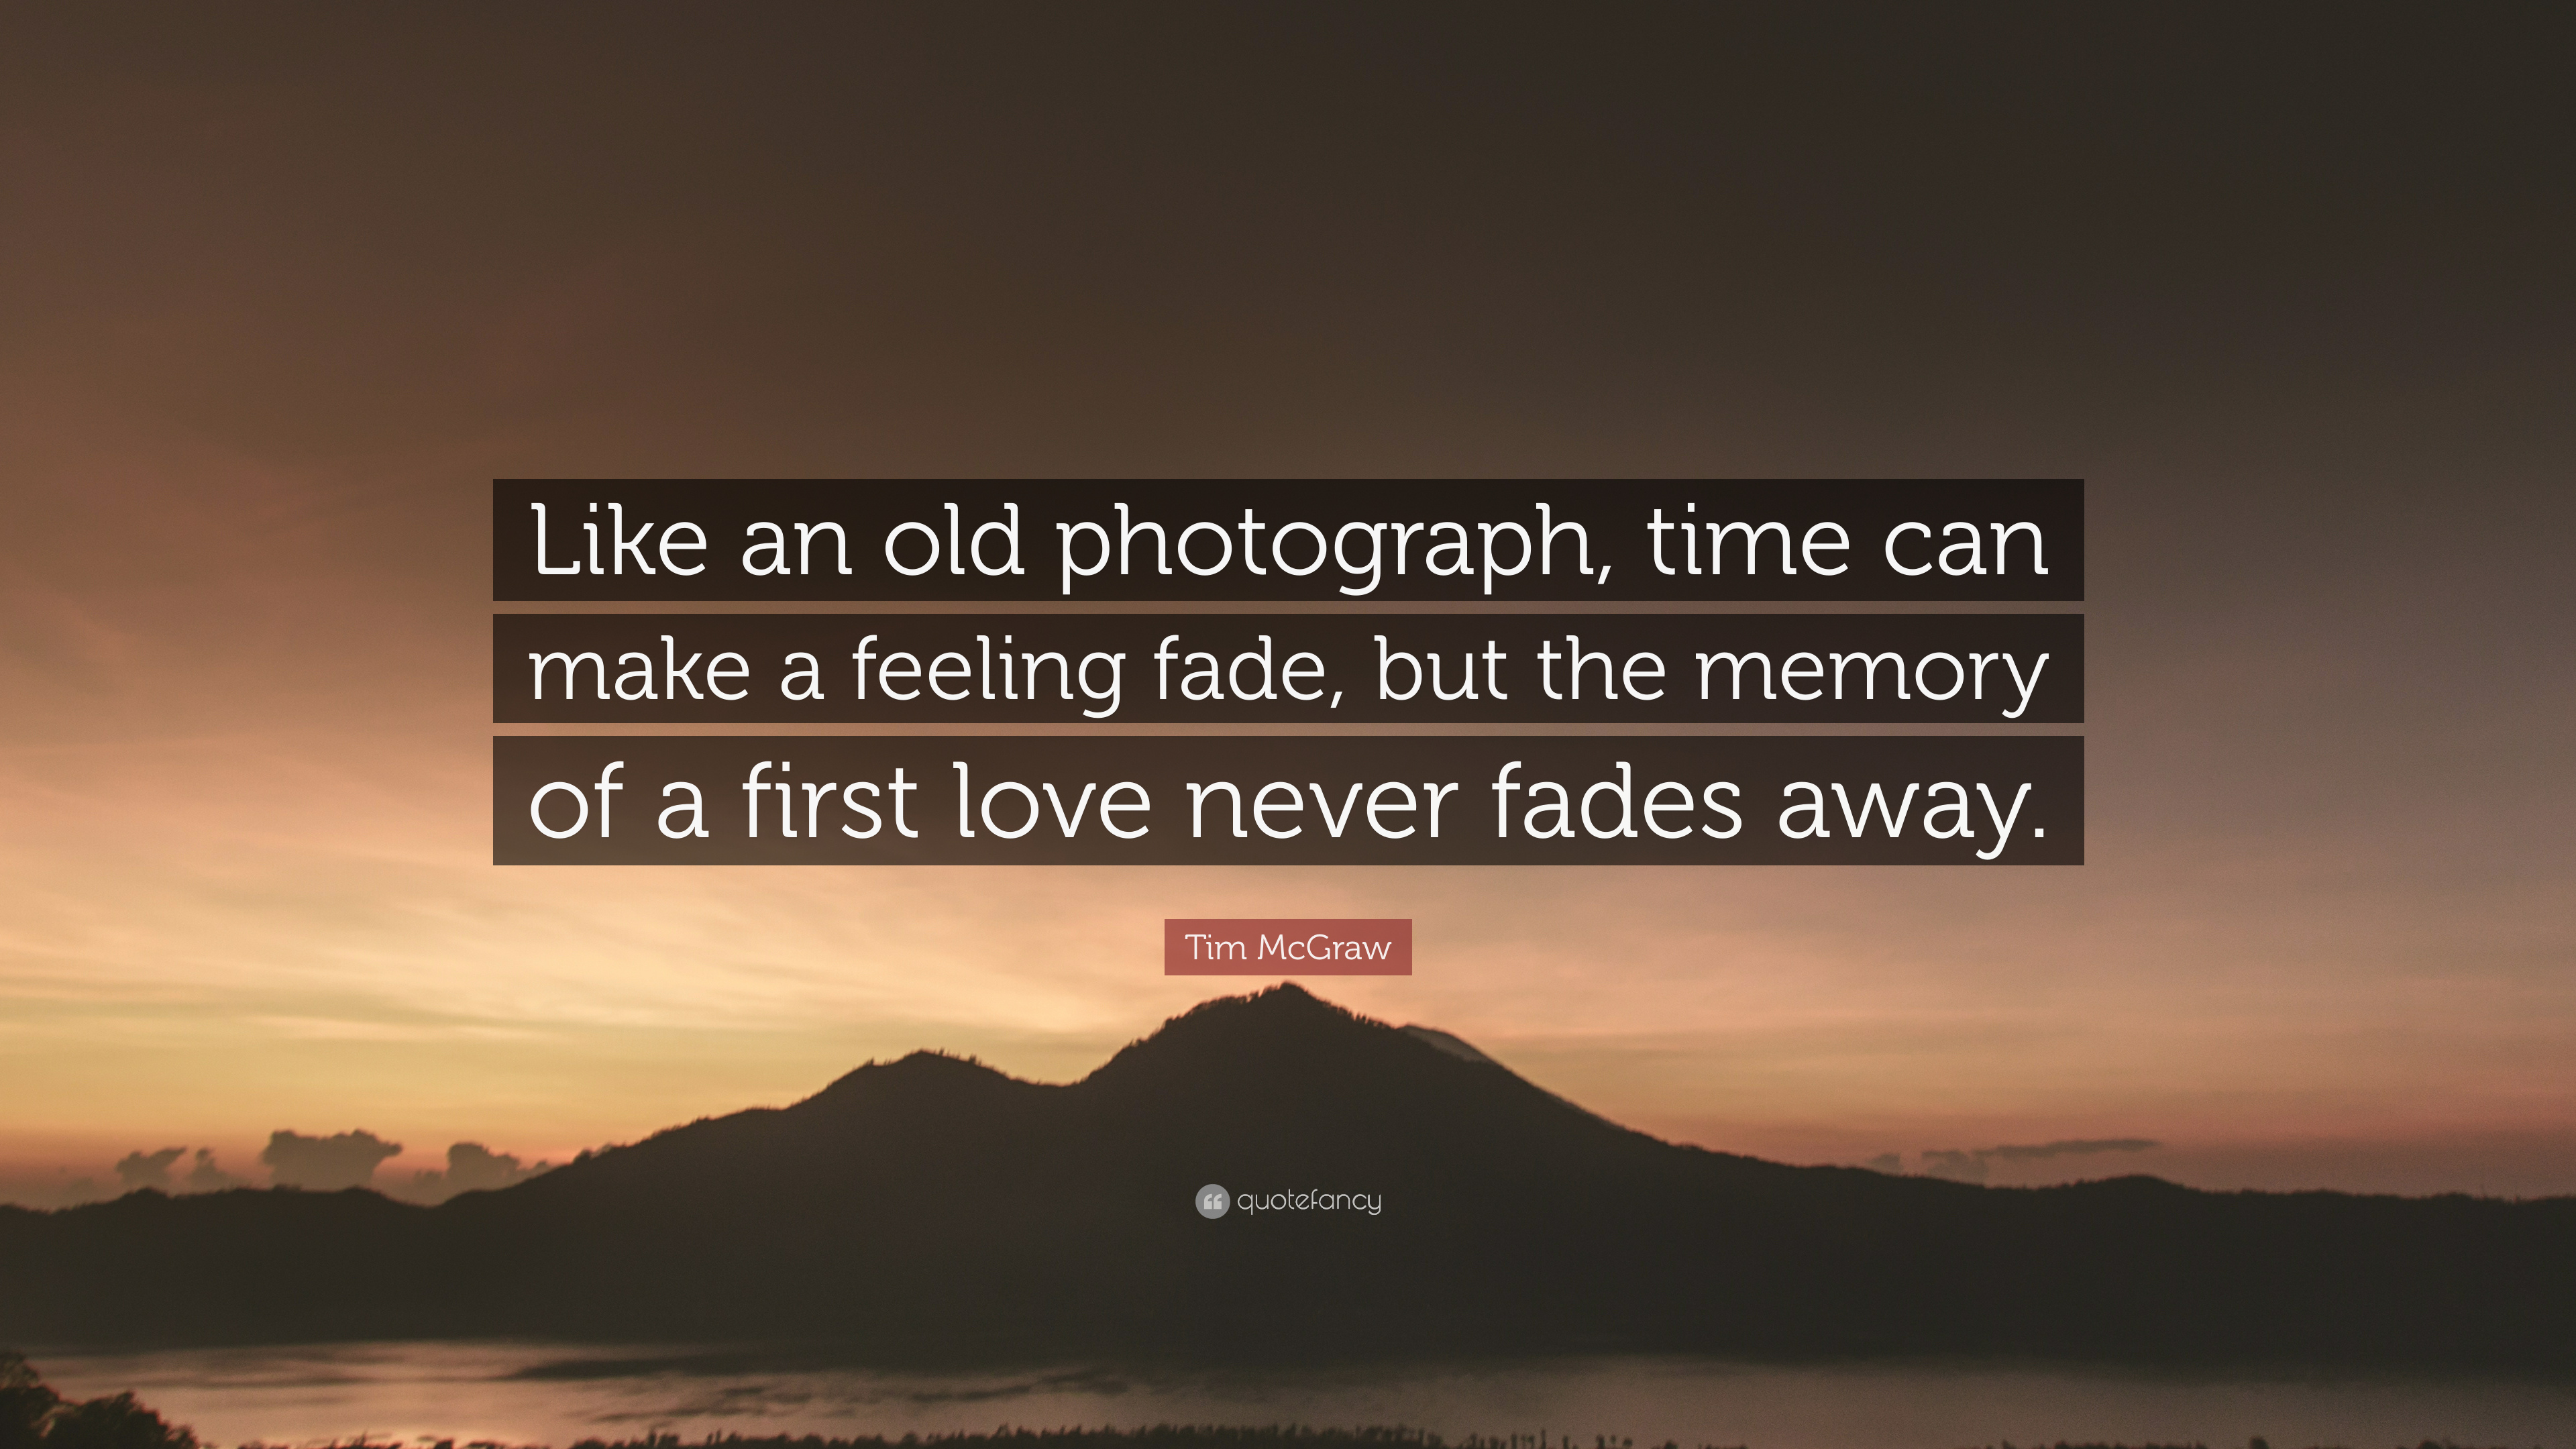 """Tim McGraw Quote """"Like an old photograph time can make a feeling fade"""